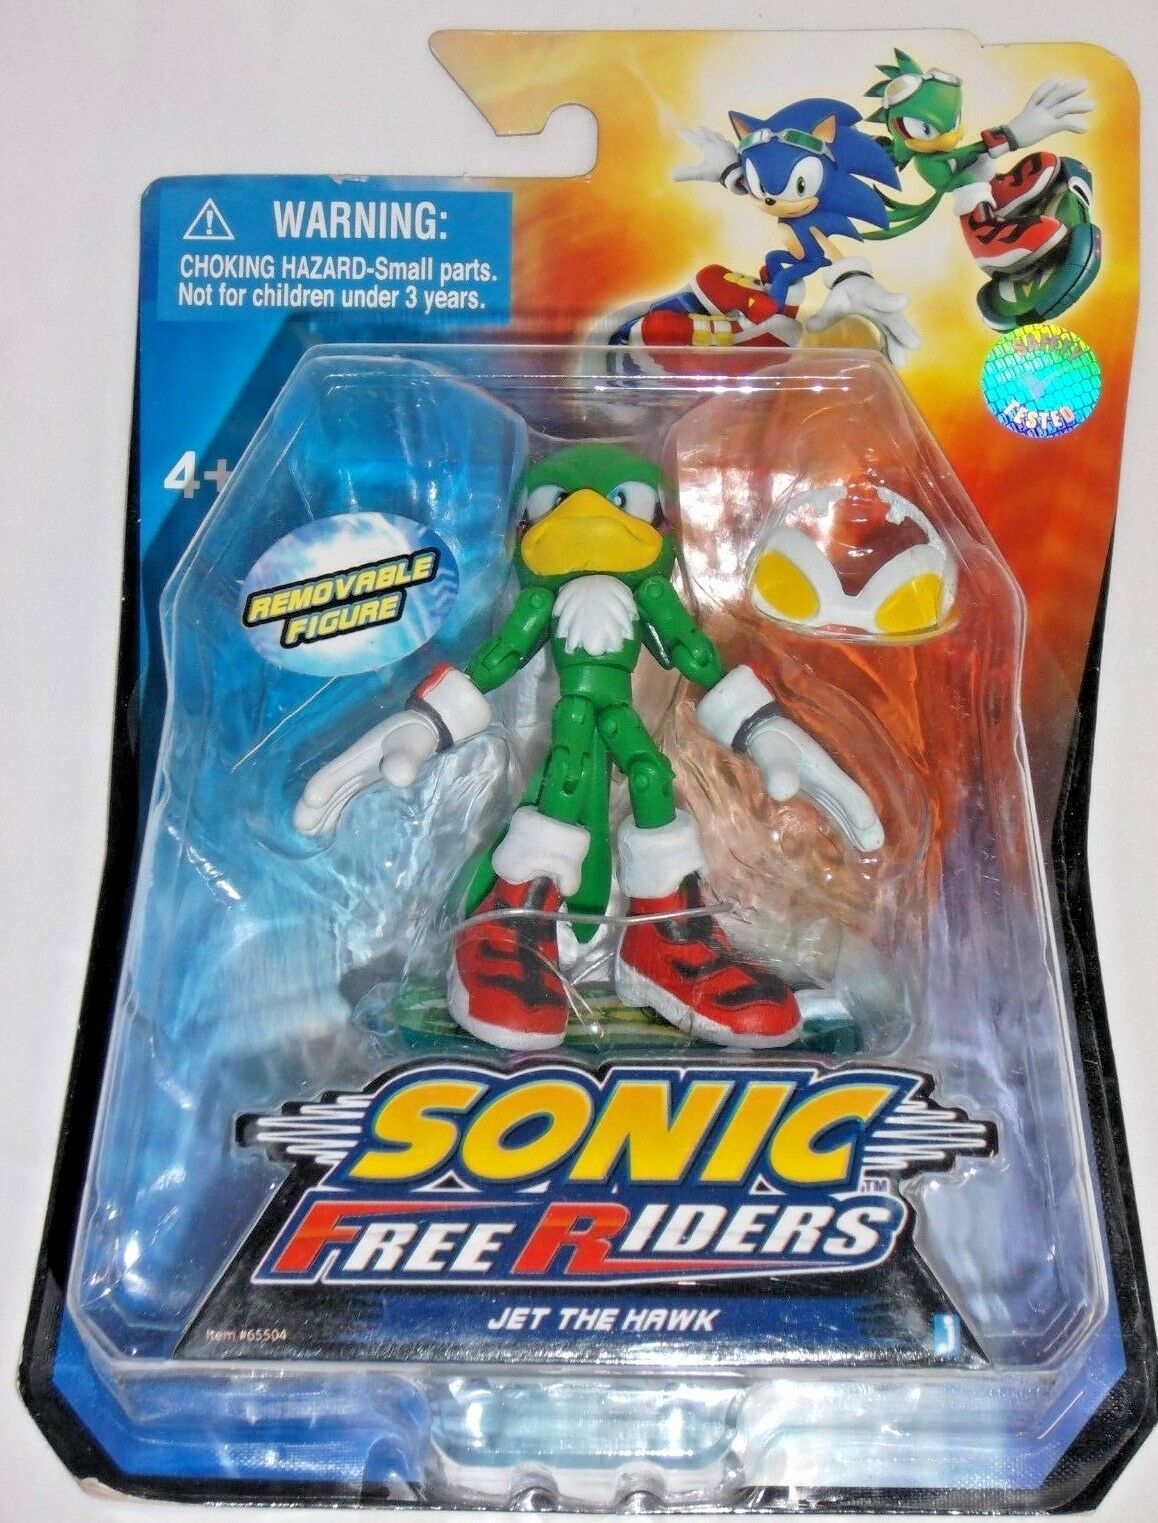 JAZWARES Video Juego Sonic Hedgehog Free Riders-Jet Hawk Poseable Figura De Acción